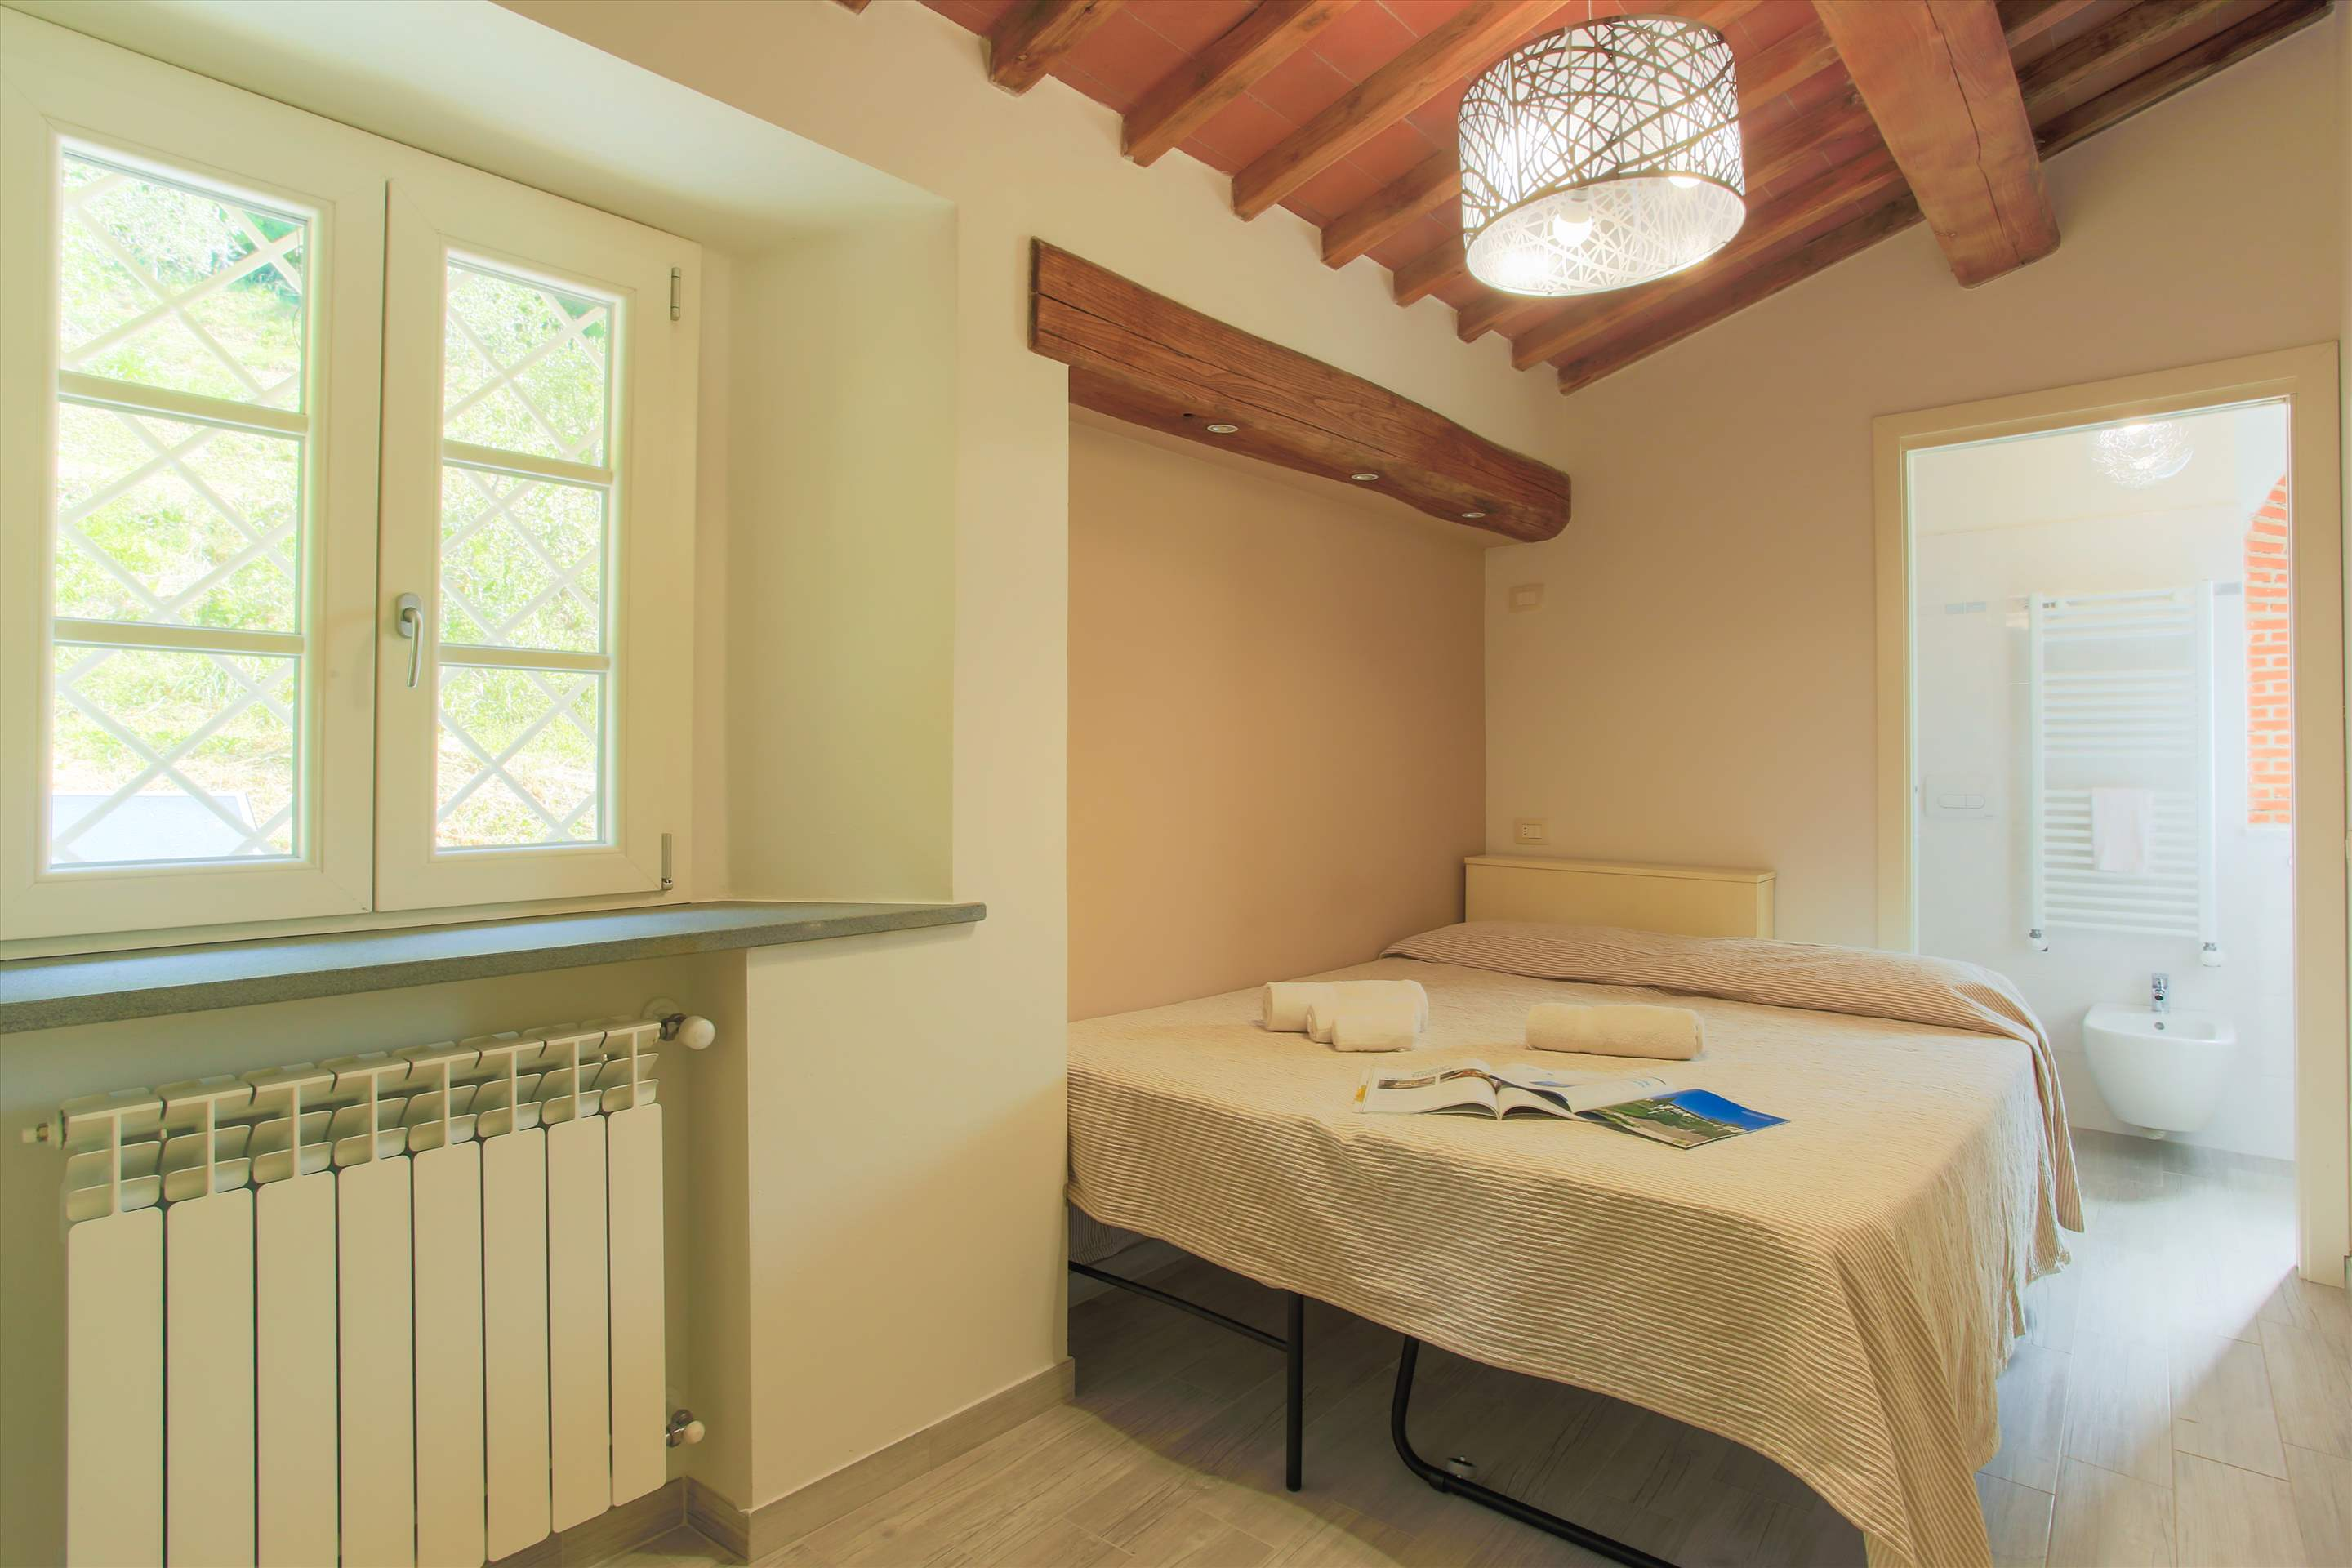 Villa Panorama, 3 bedroom villa in North Tuscany - Pisa & Lucca Area, Tuscany Photo #21